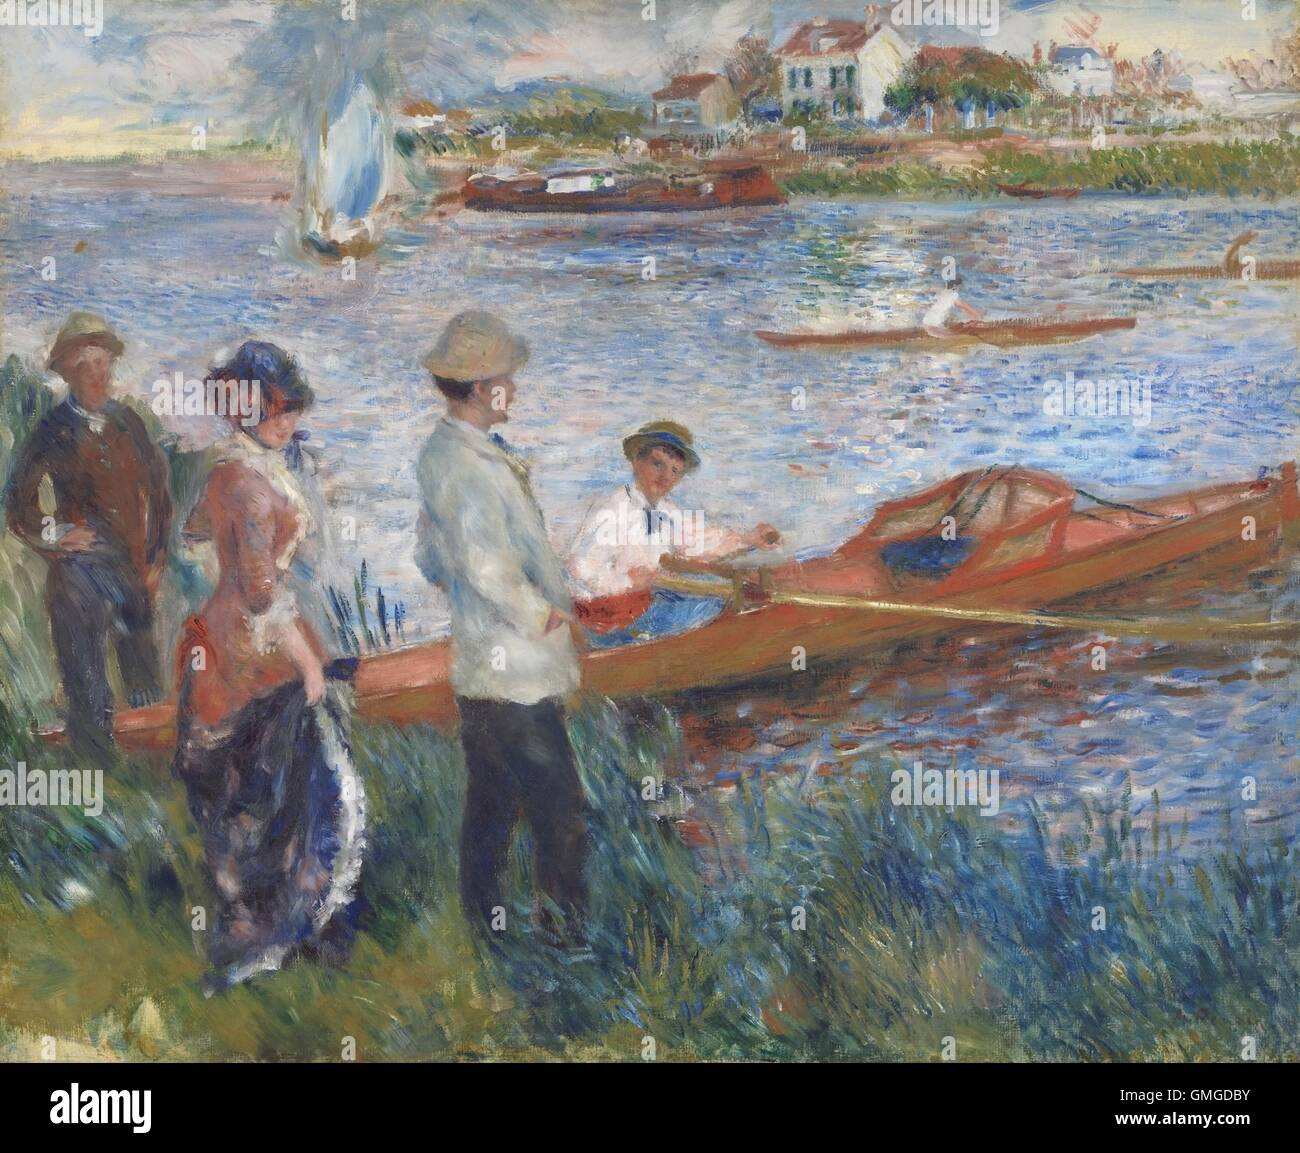 Oarsmen at Chatou, by Auguste Renoir, 1879, French impressionist painting, oil on canvas. The man in this boat may - Stock Image